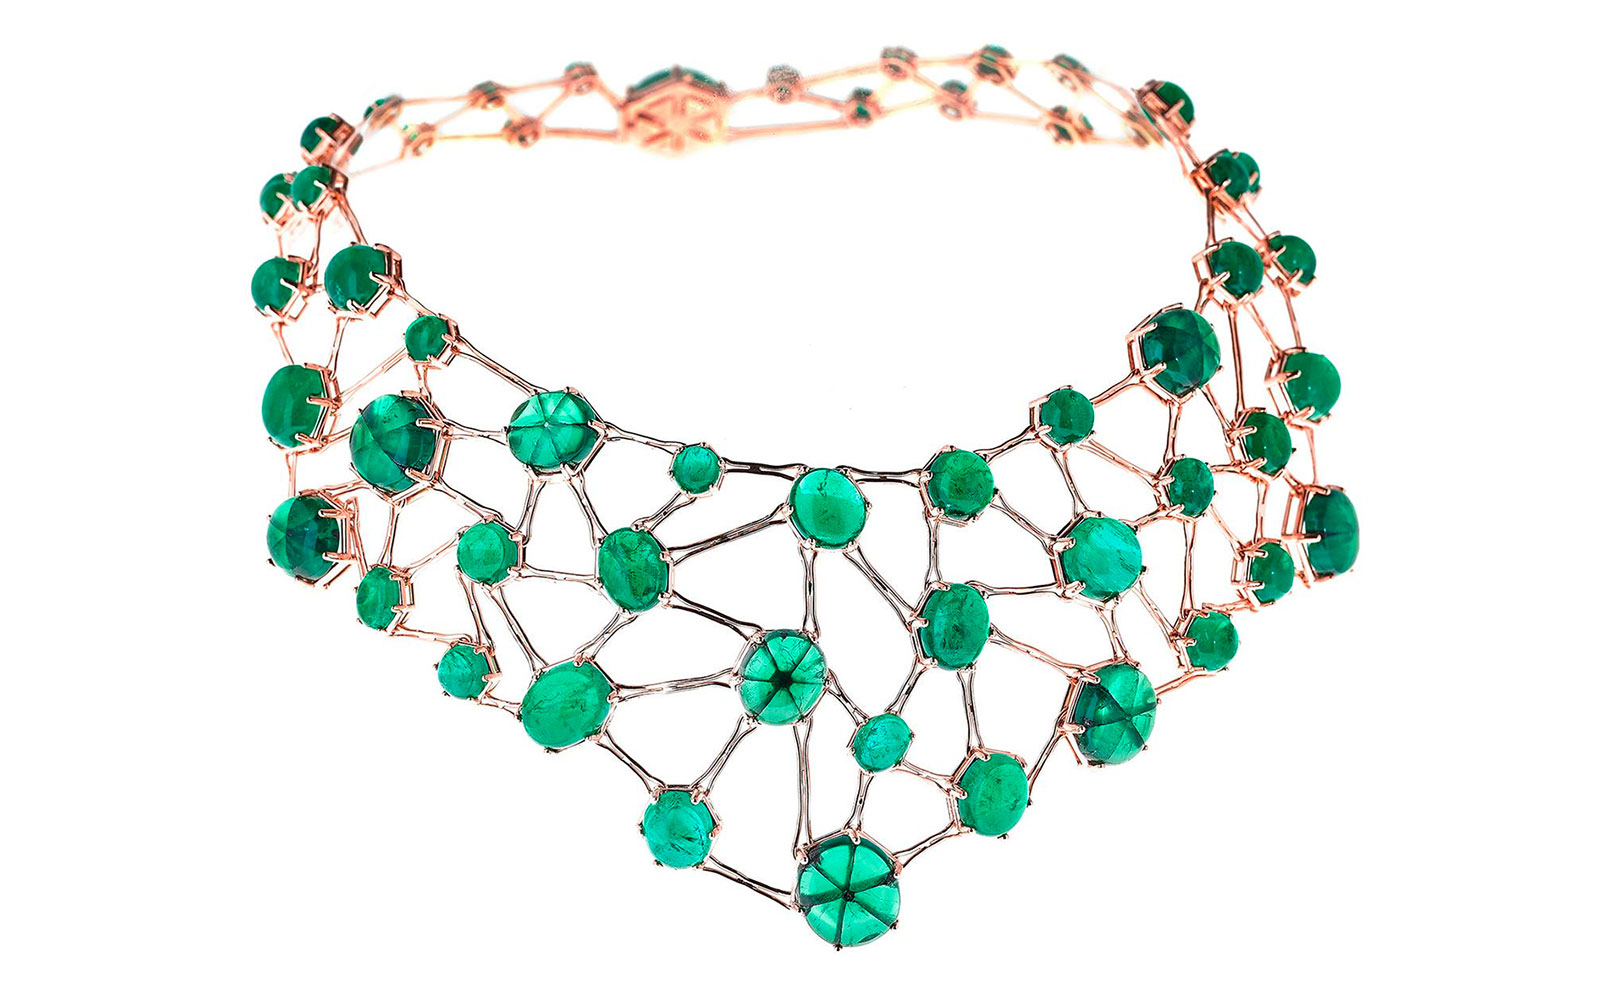 Selim Mouzannar 'Amal' necklace from the 'Transparency' collection with trapiche emeralds and emeralds in gold